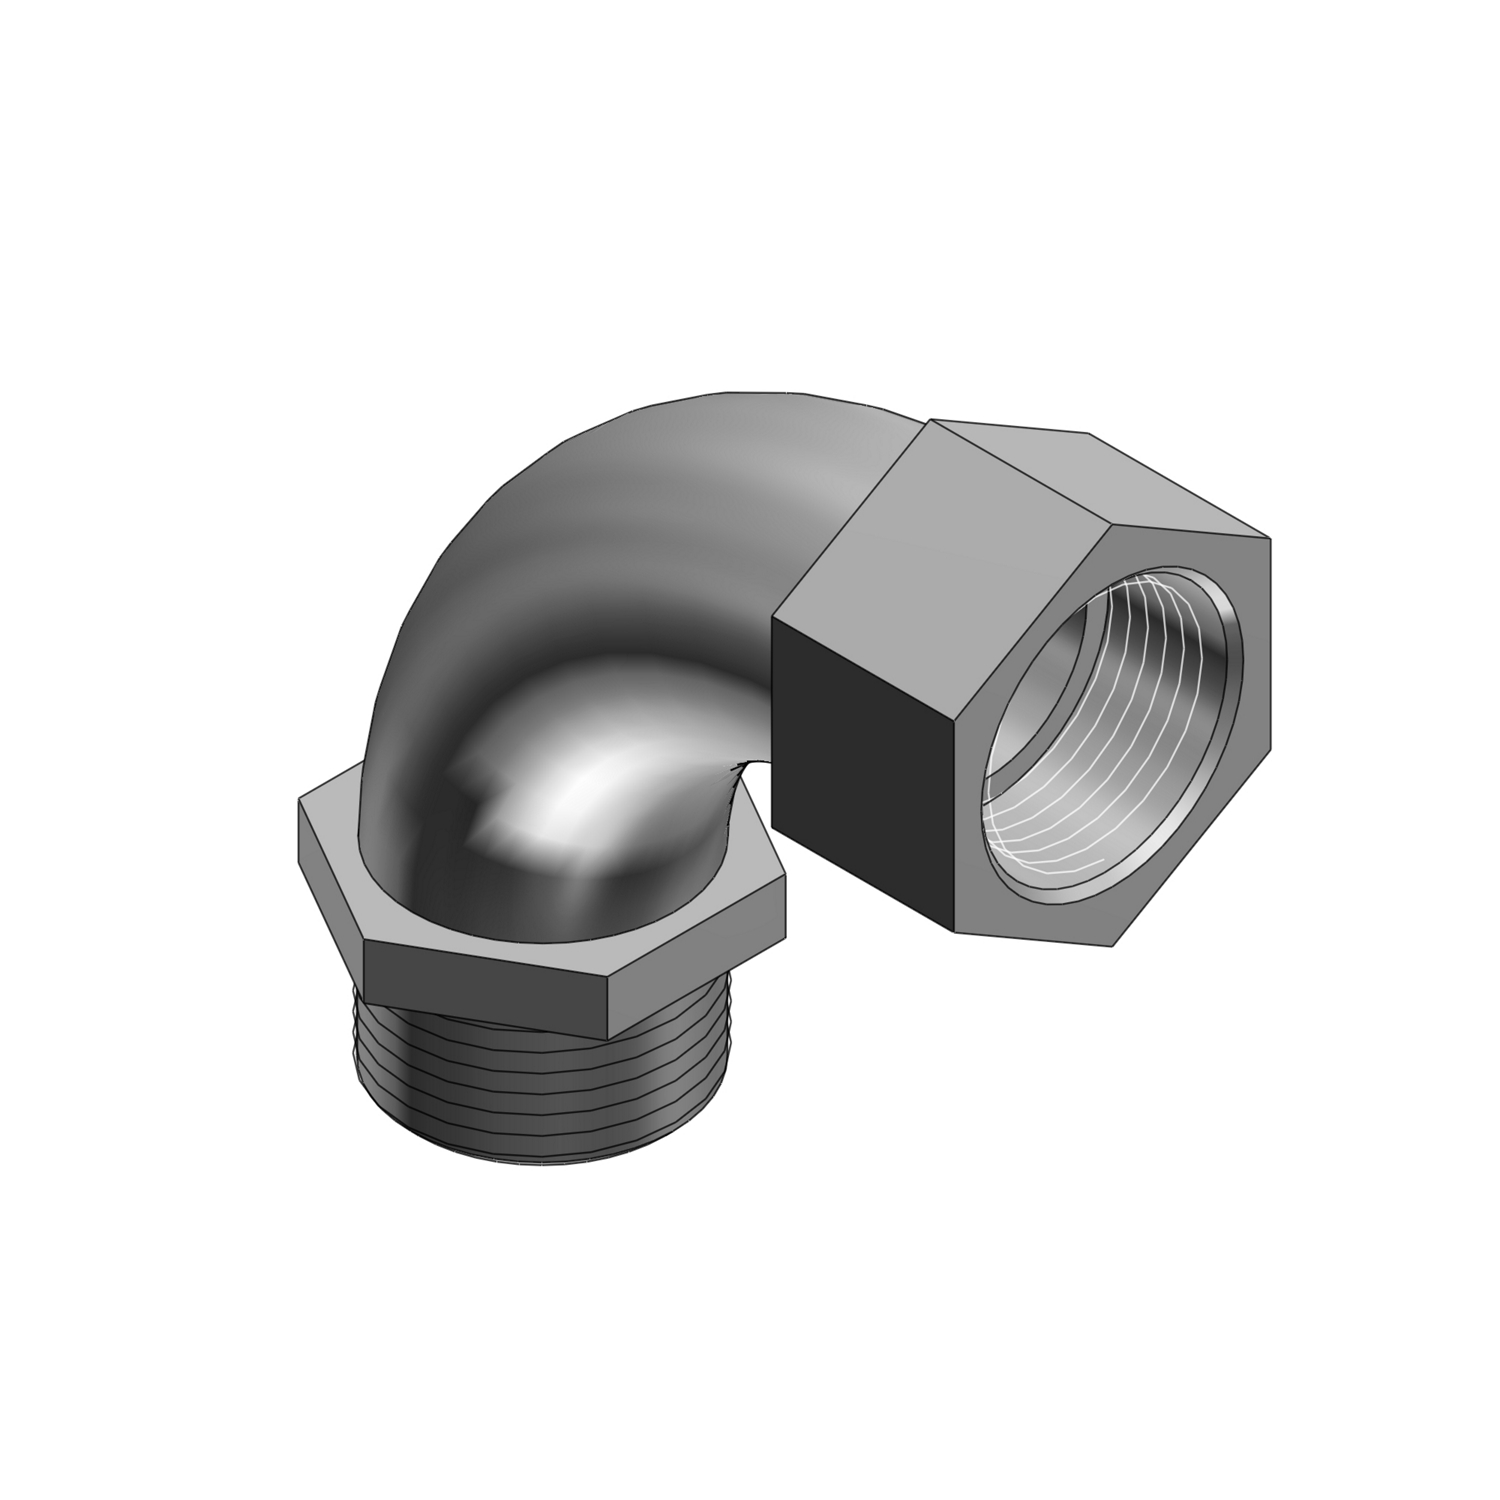 """T&B 462 90D 1"""" 90D Bushed Elbow,Malleable Iron. For use withRigid/IMC Conduit"""